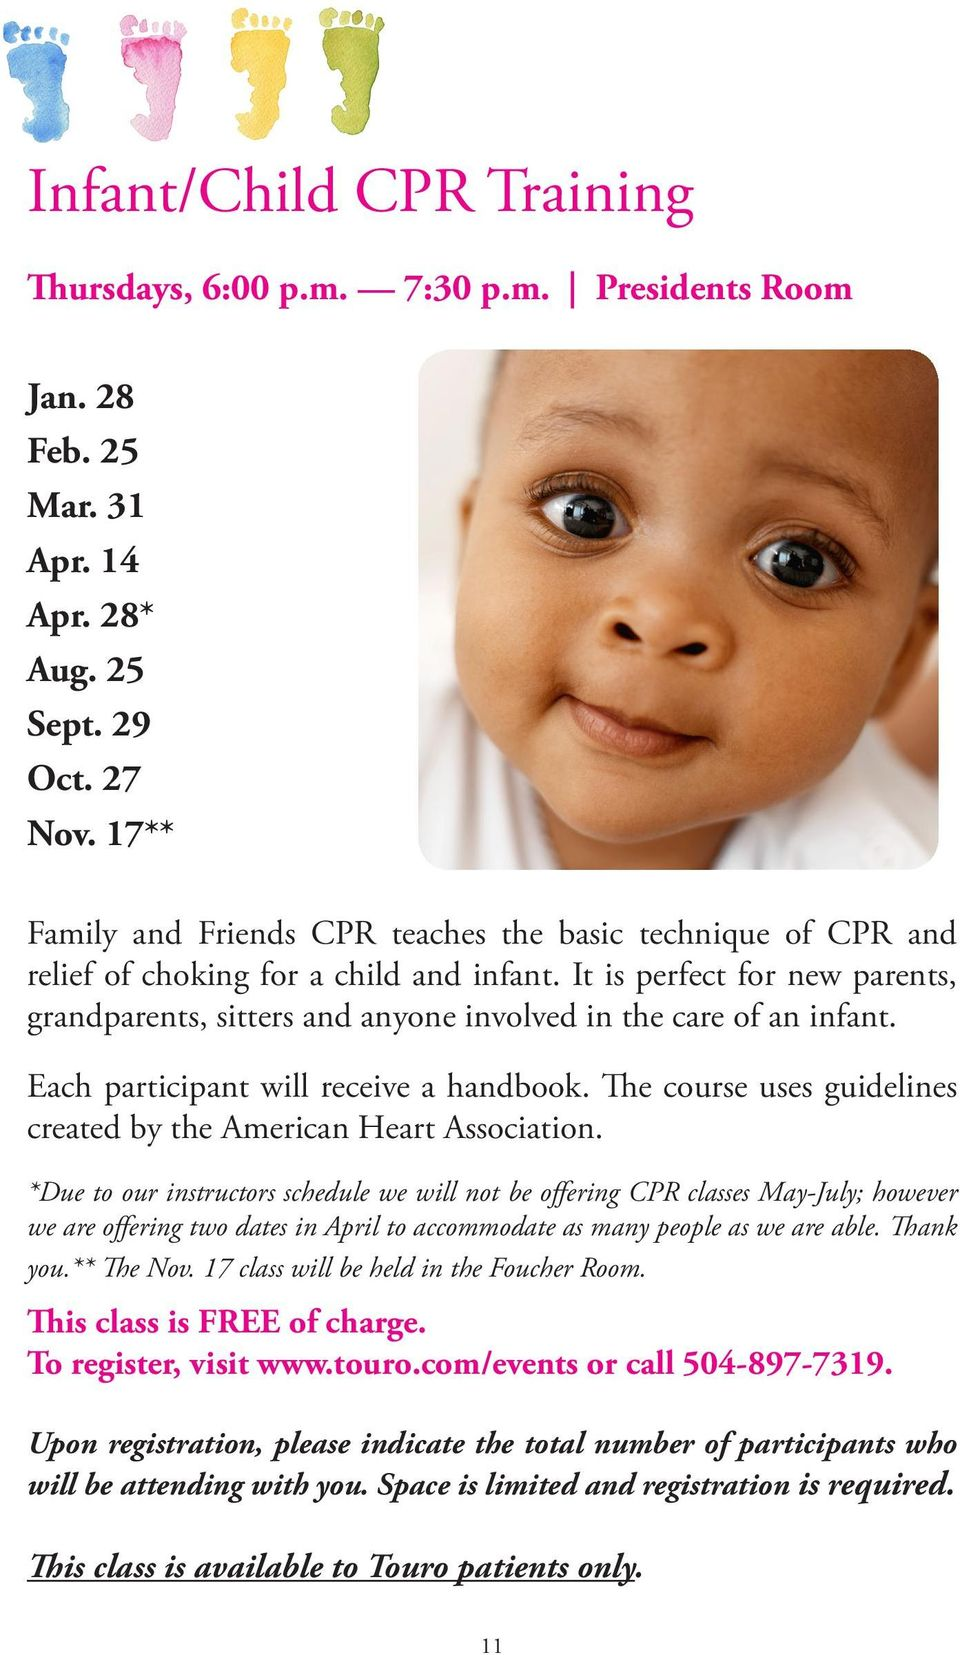 It is perfect for new parents, grandparents, sitters and anyone involved in the care of an infant. Each participant will receive a handbook.